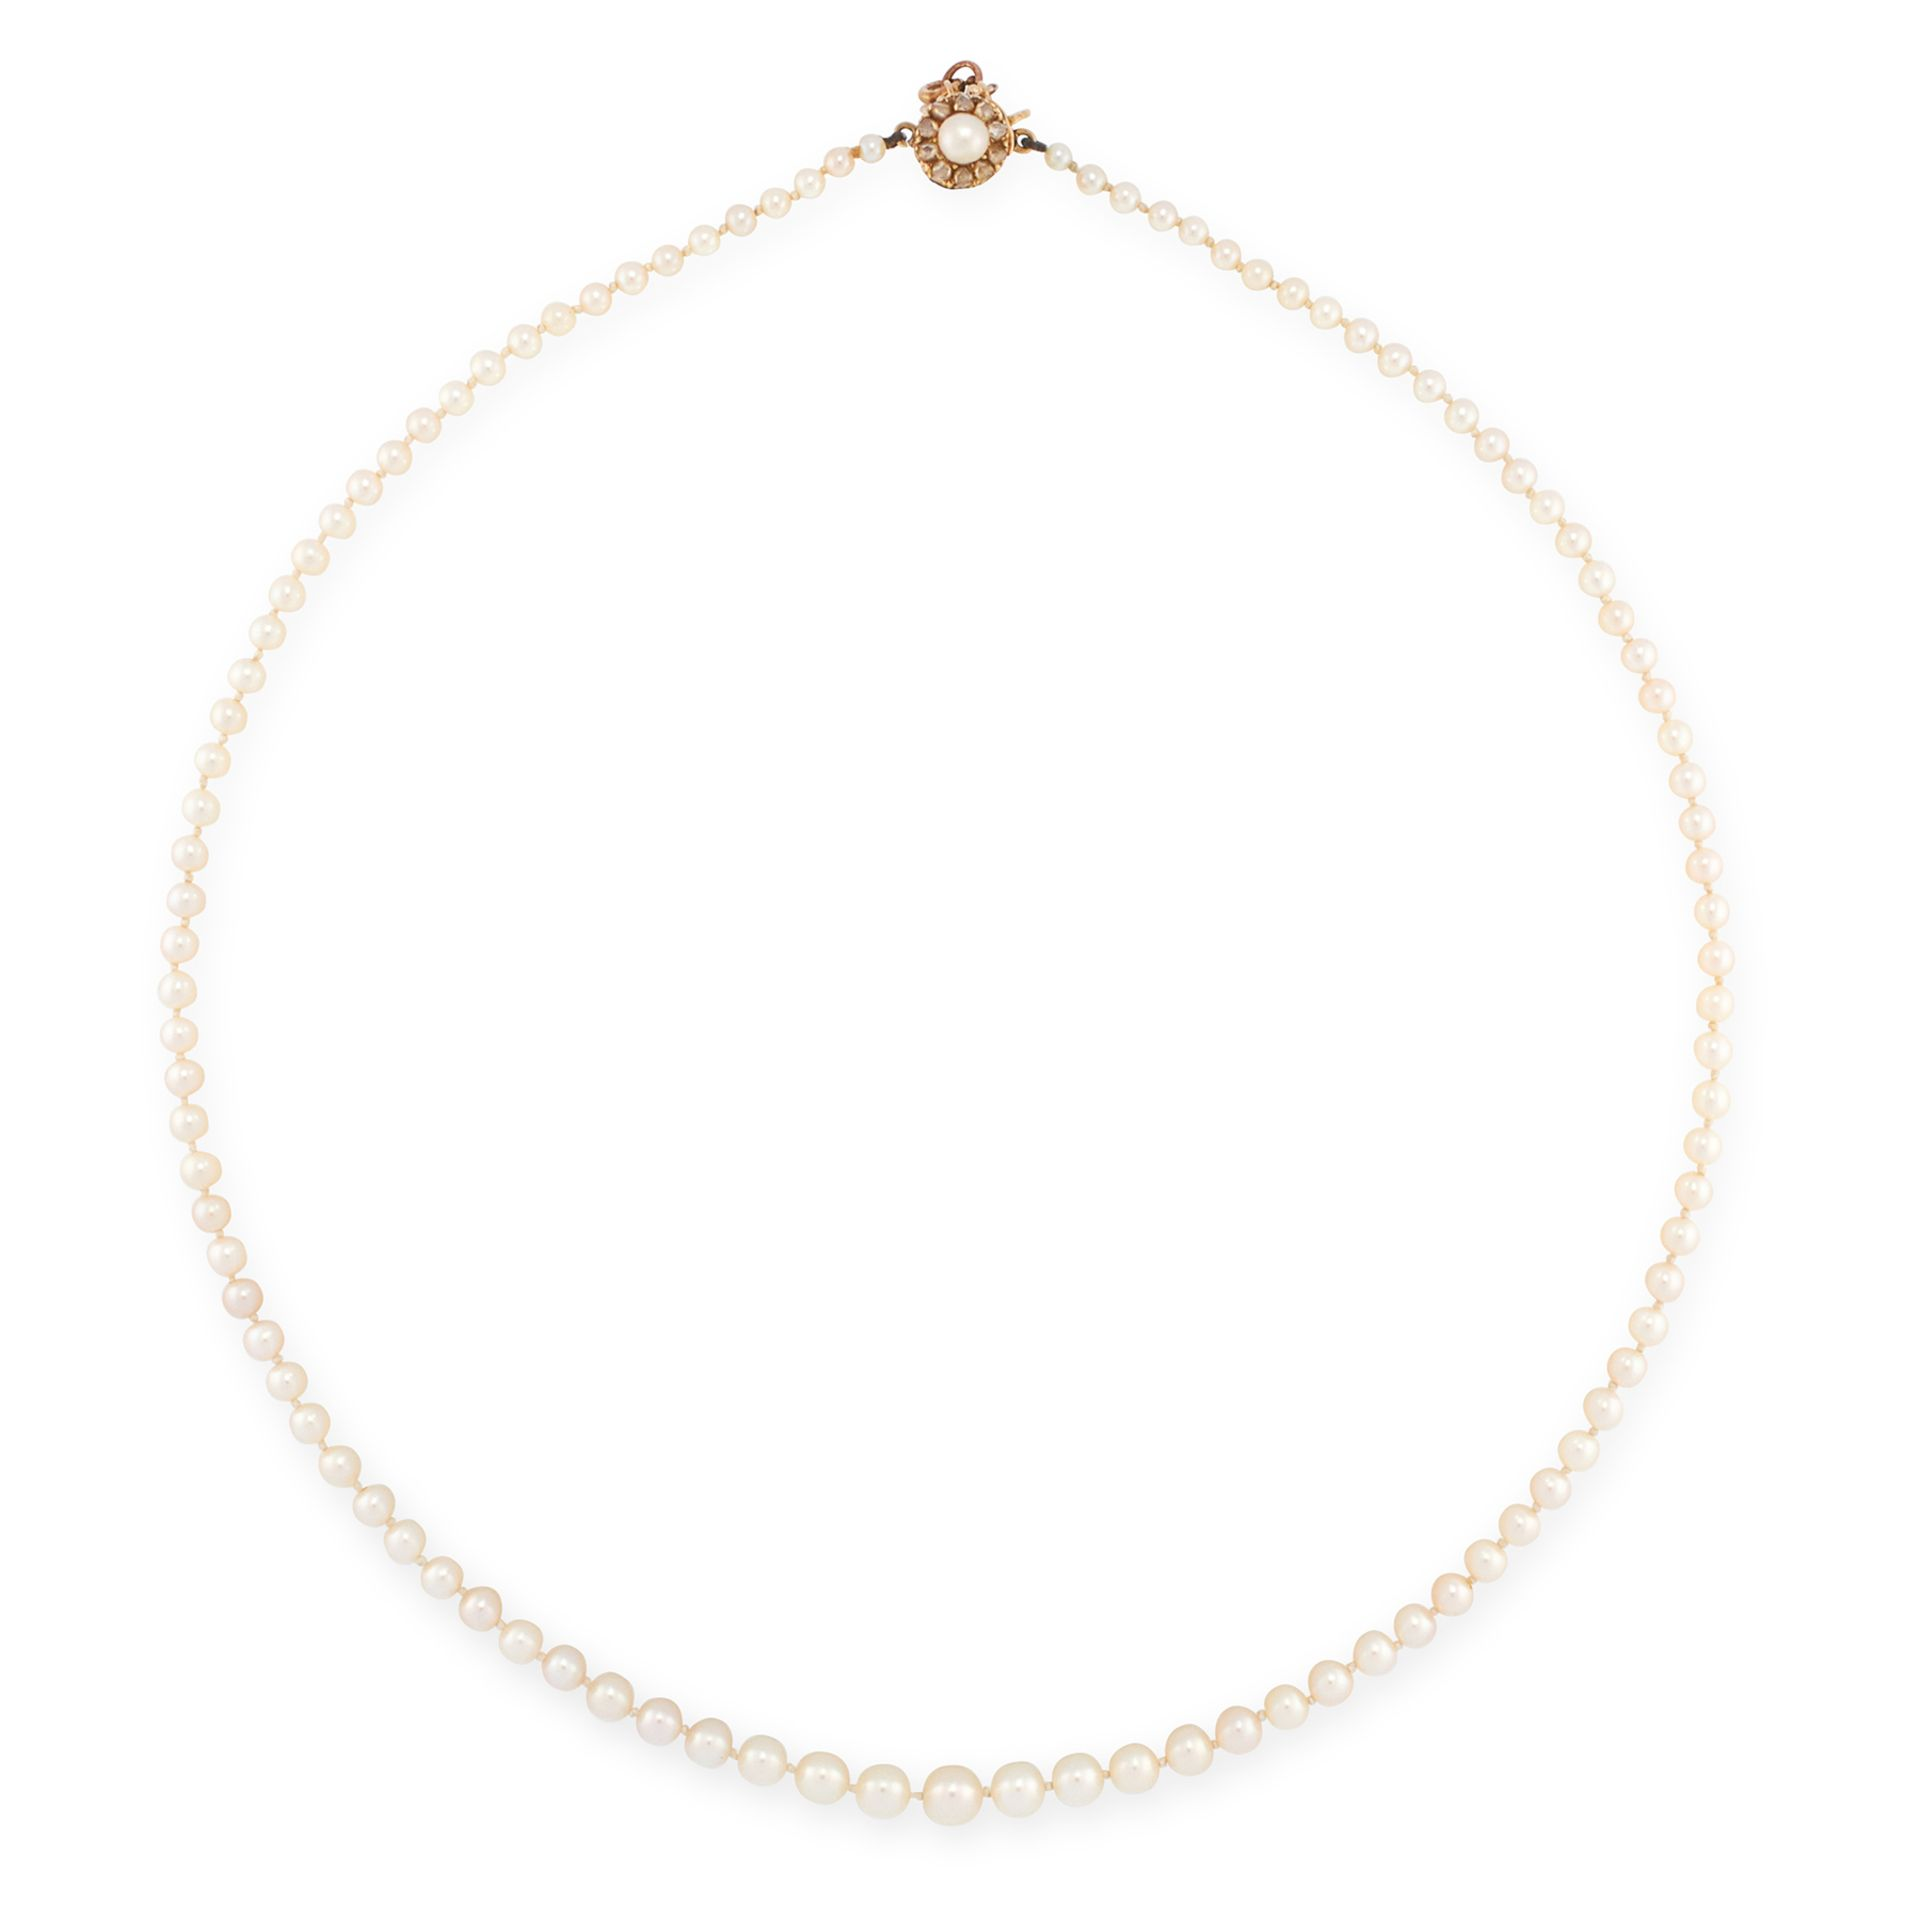 A PEARL AND DIAMOND NECKLACE in yellow gold, comprising of a single row of graduated pearls, on a